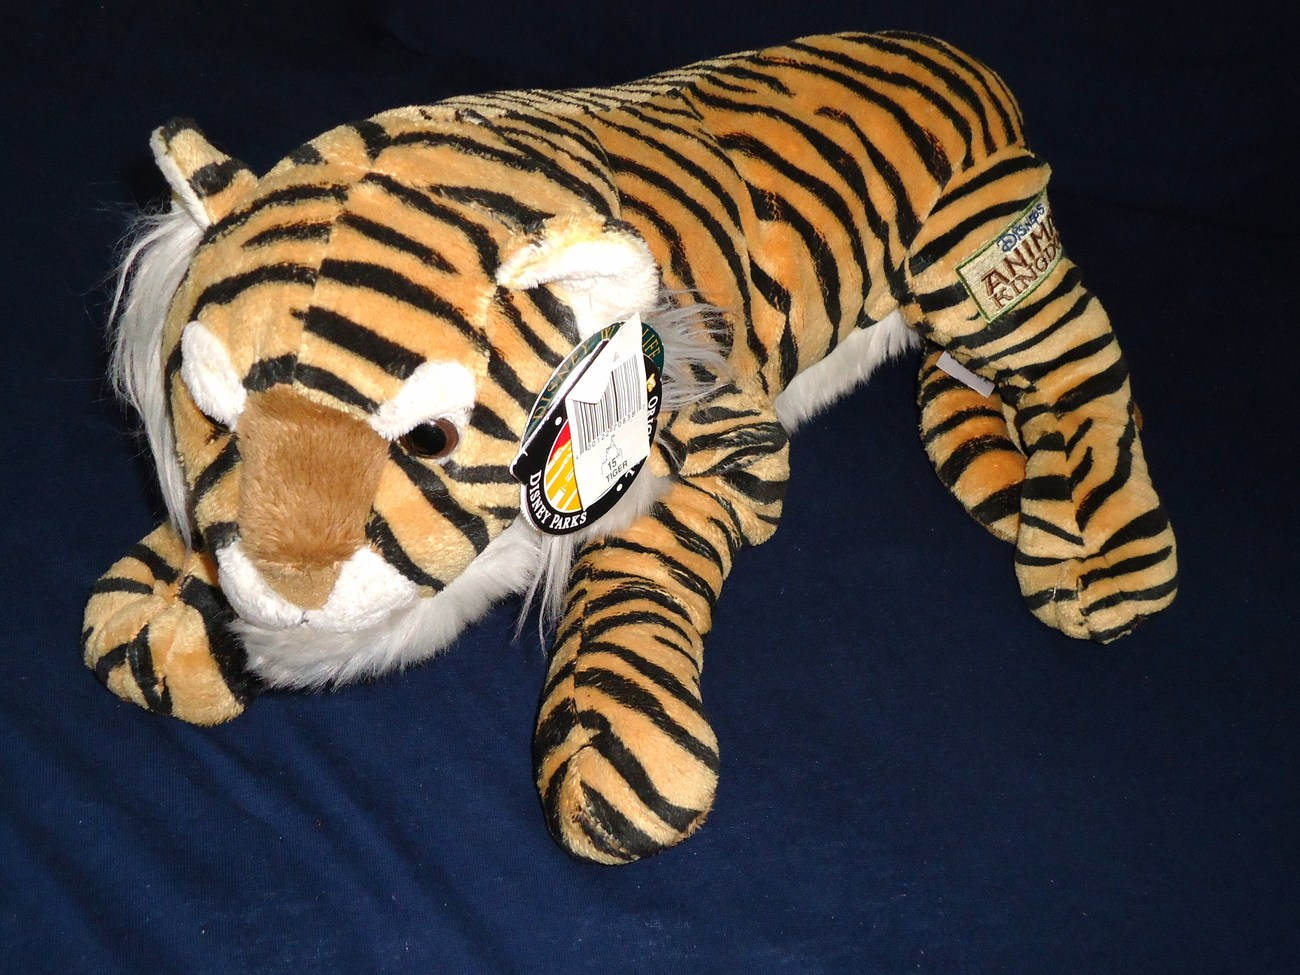 Disney Animal Kingdom Tiger Lying Down Realistic Plush Stuffed Animal Tags Large